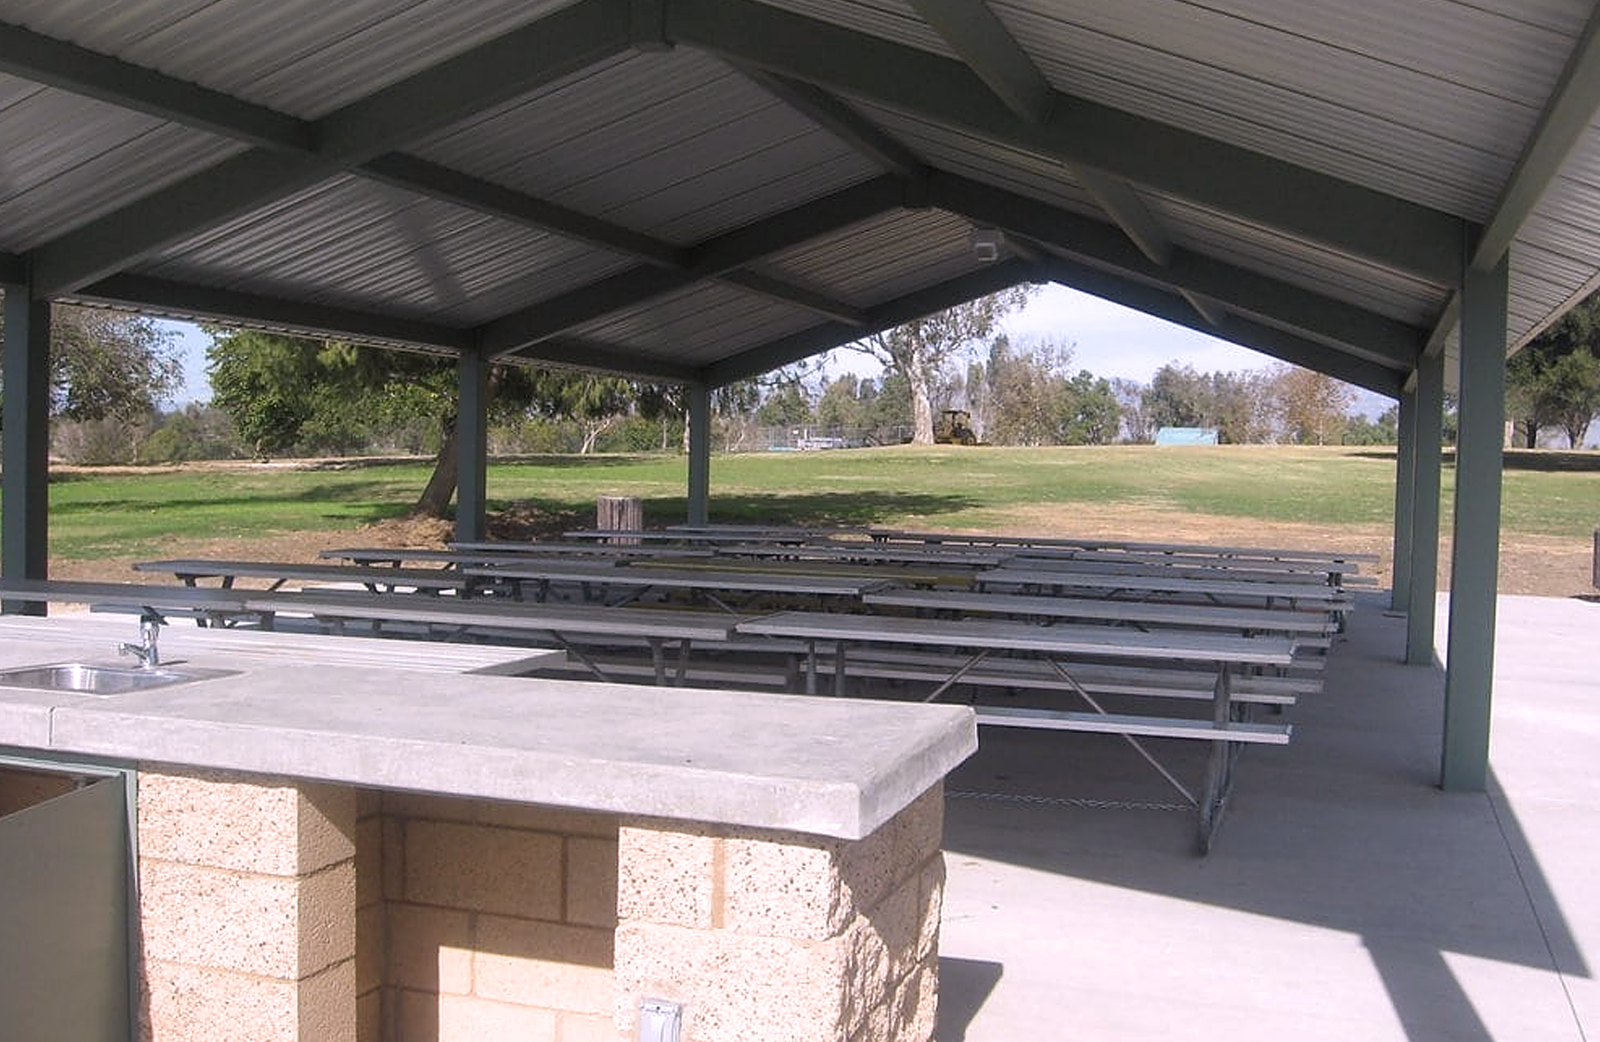 A closer view of a large picnic shelter at Prado park.